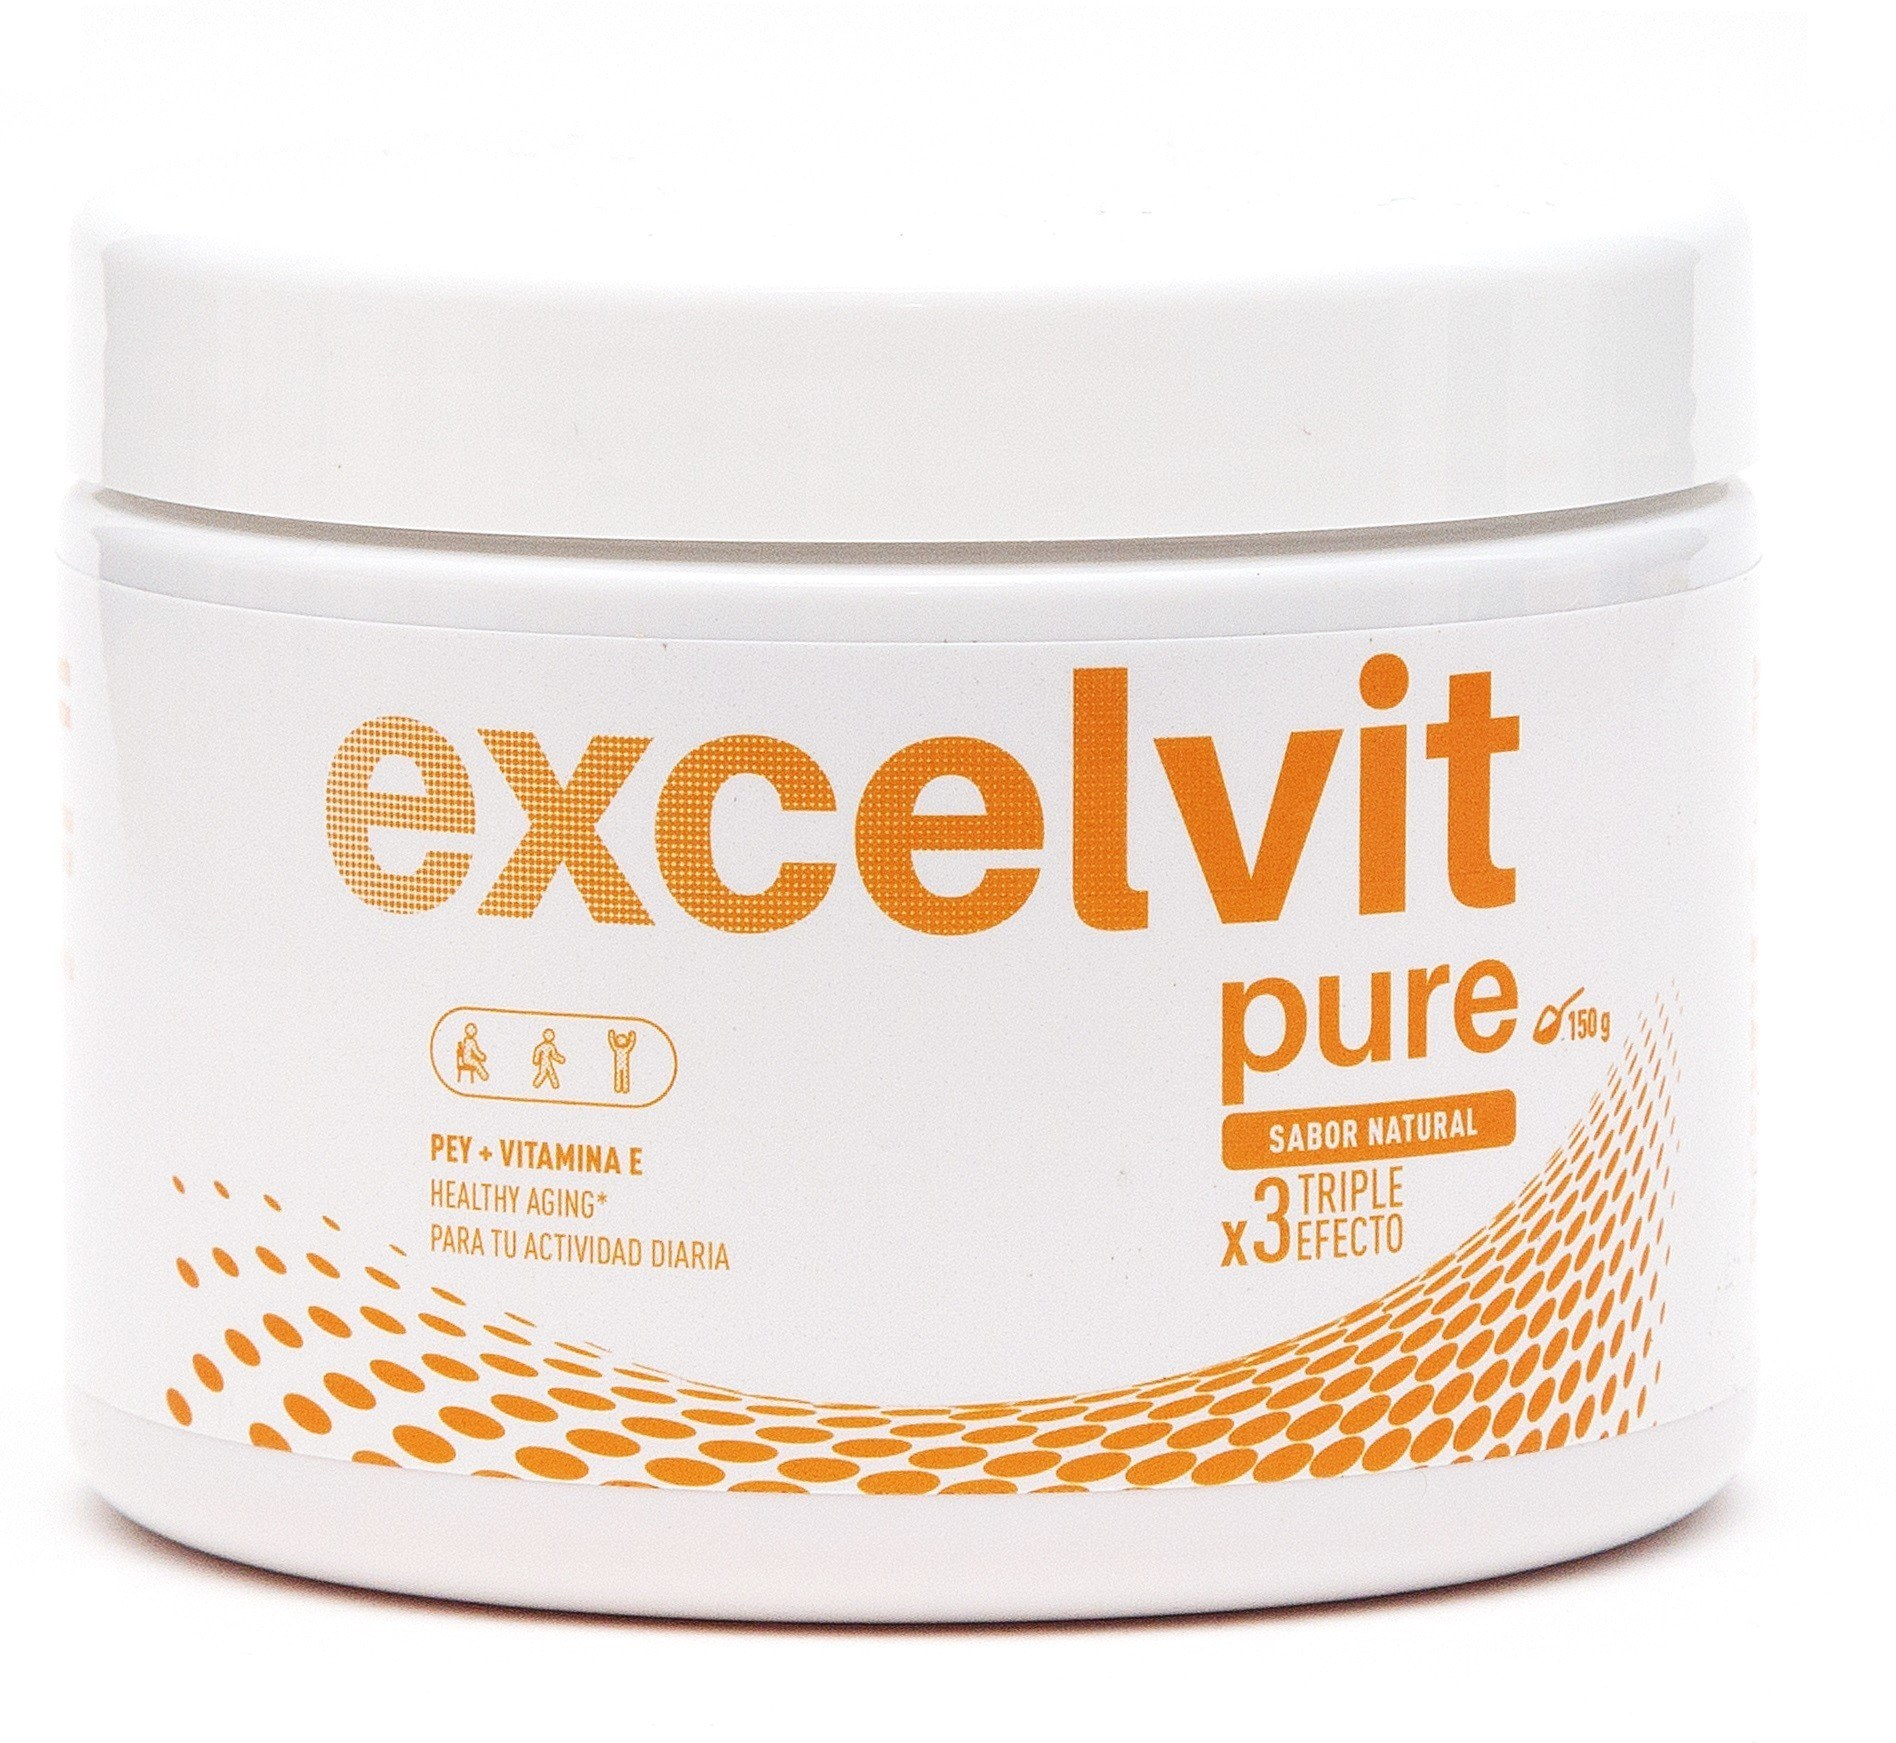 Excelvit Pure Sabor Natural 150 Gramos